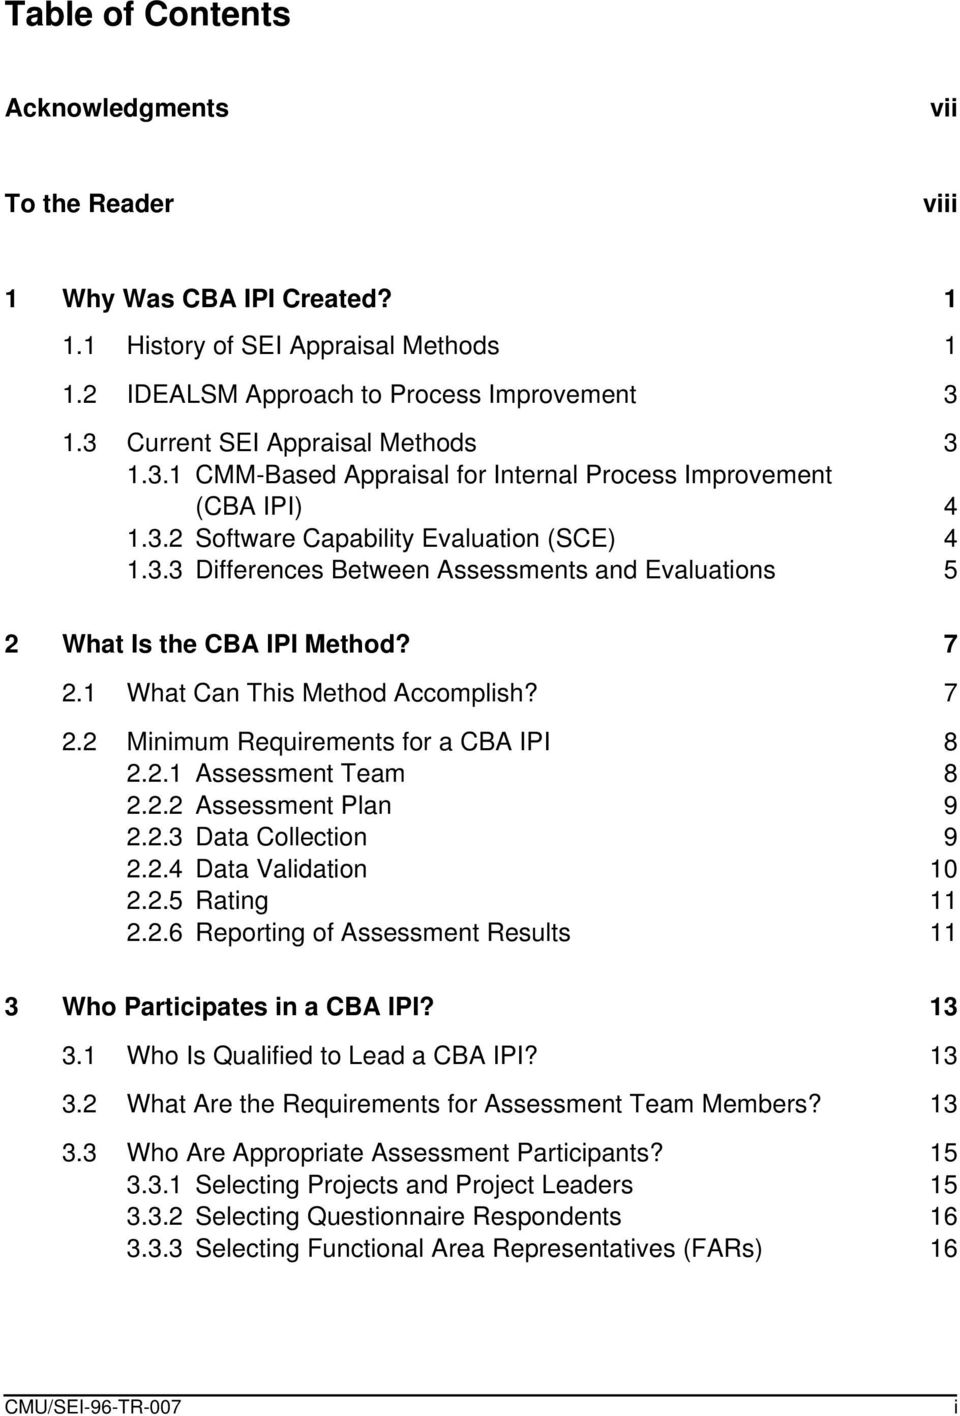 7 2.1 What Can This Method Accomplish? 7 2.2 Minimum Requirements for a CBA IPI 8 2.2.1 Assessment Team 8 2.2.2 Assessment Plan 9 2.2.3 Data Collection 9 2.2.4 Data Validation 10 2.2.5 Rating 11 2.2.6 Reporting of Assessment Results 11 3 Who Participates in a CBA IPI?